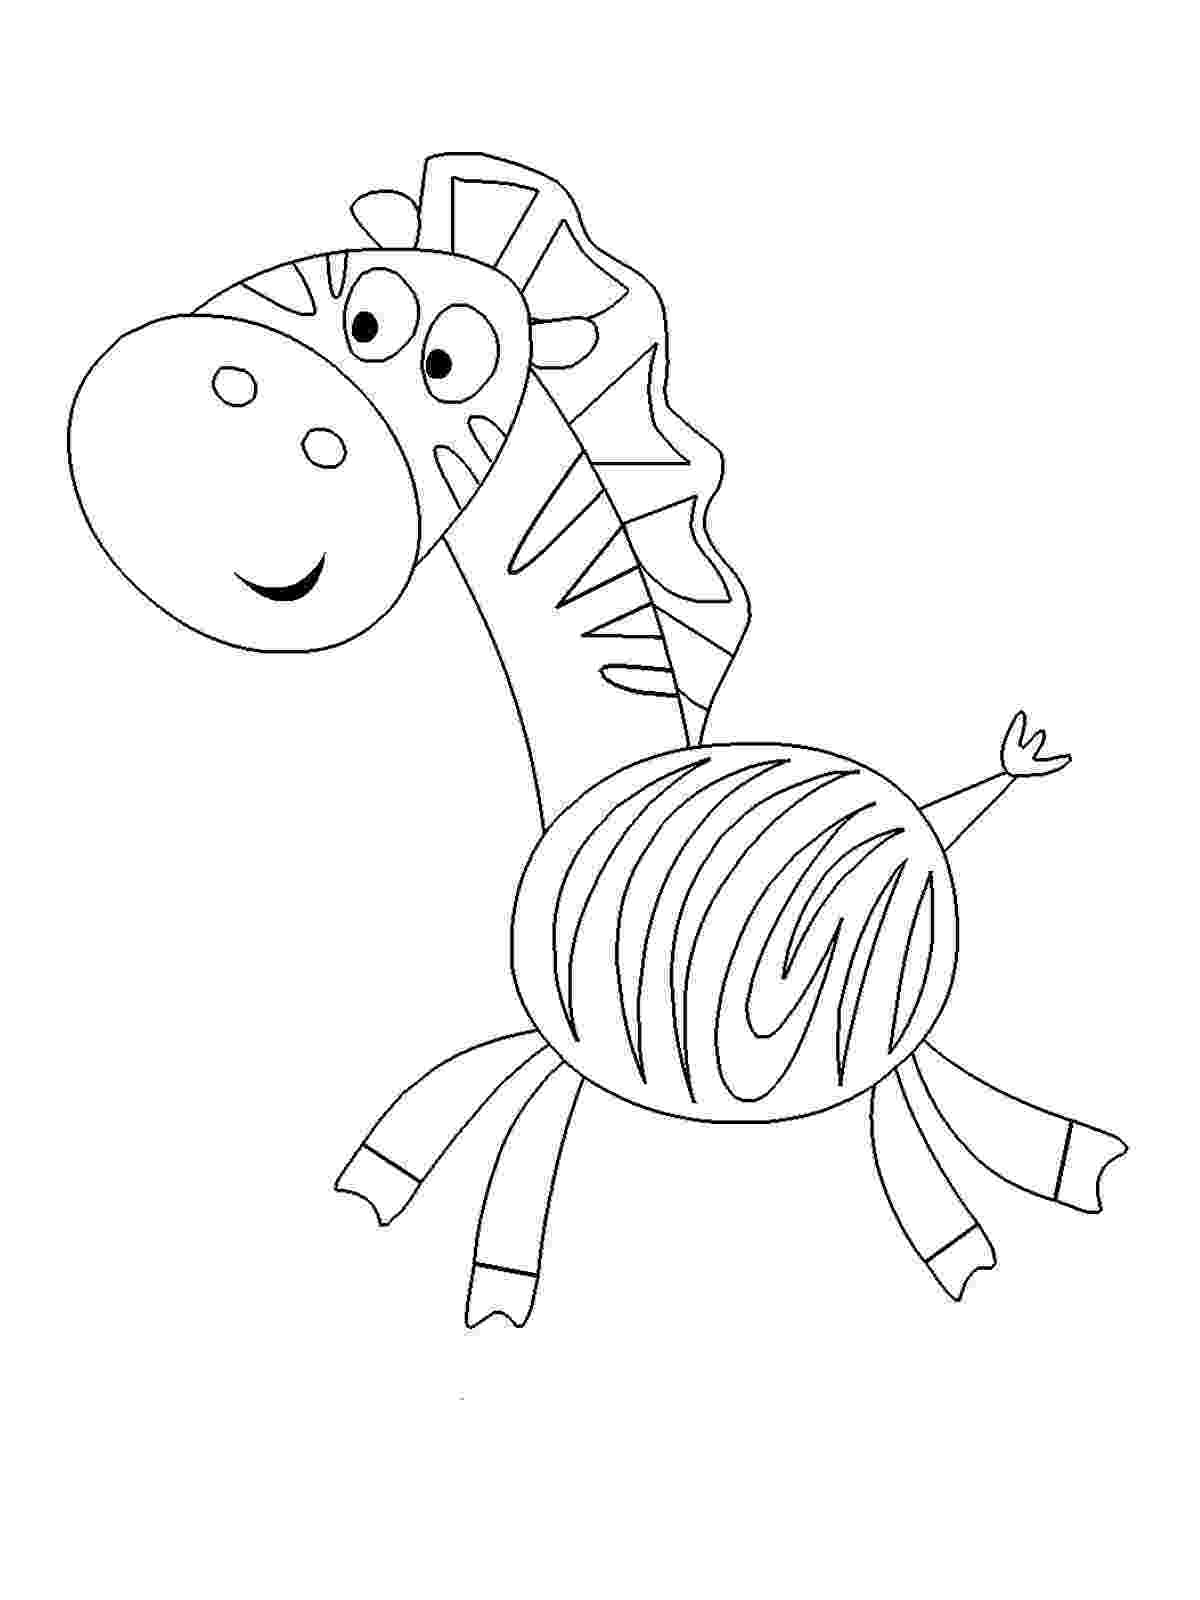 coloring sheets for kids free elsa coloring page for kids sheets coloring